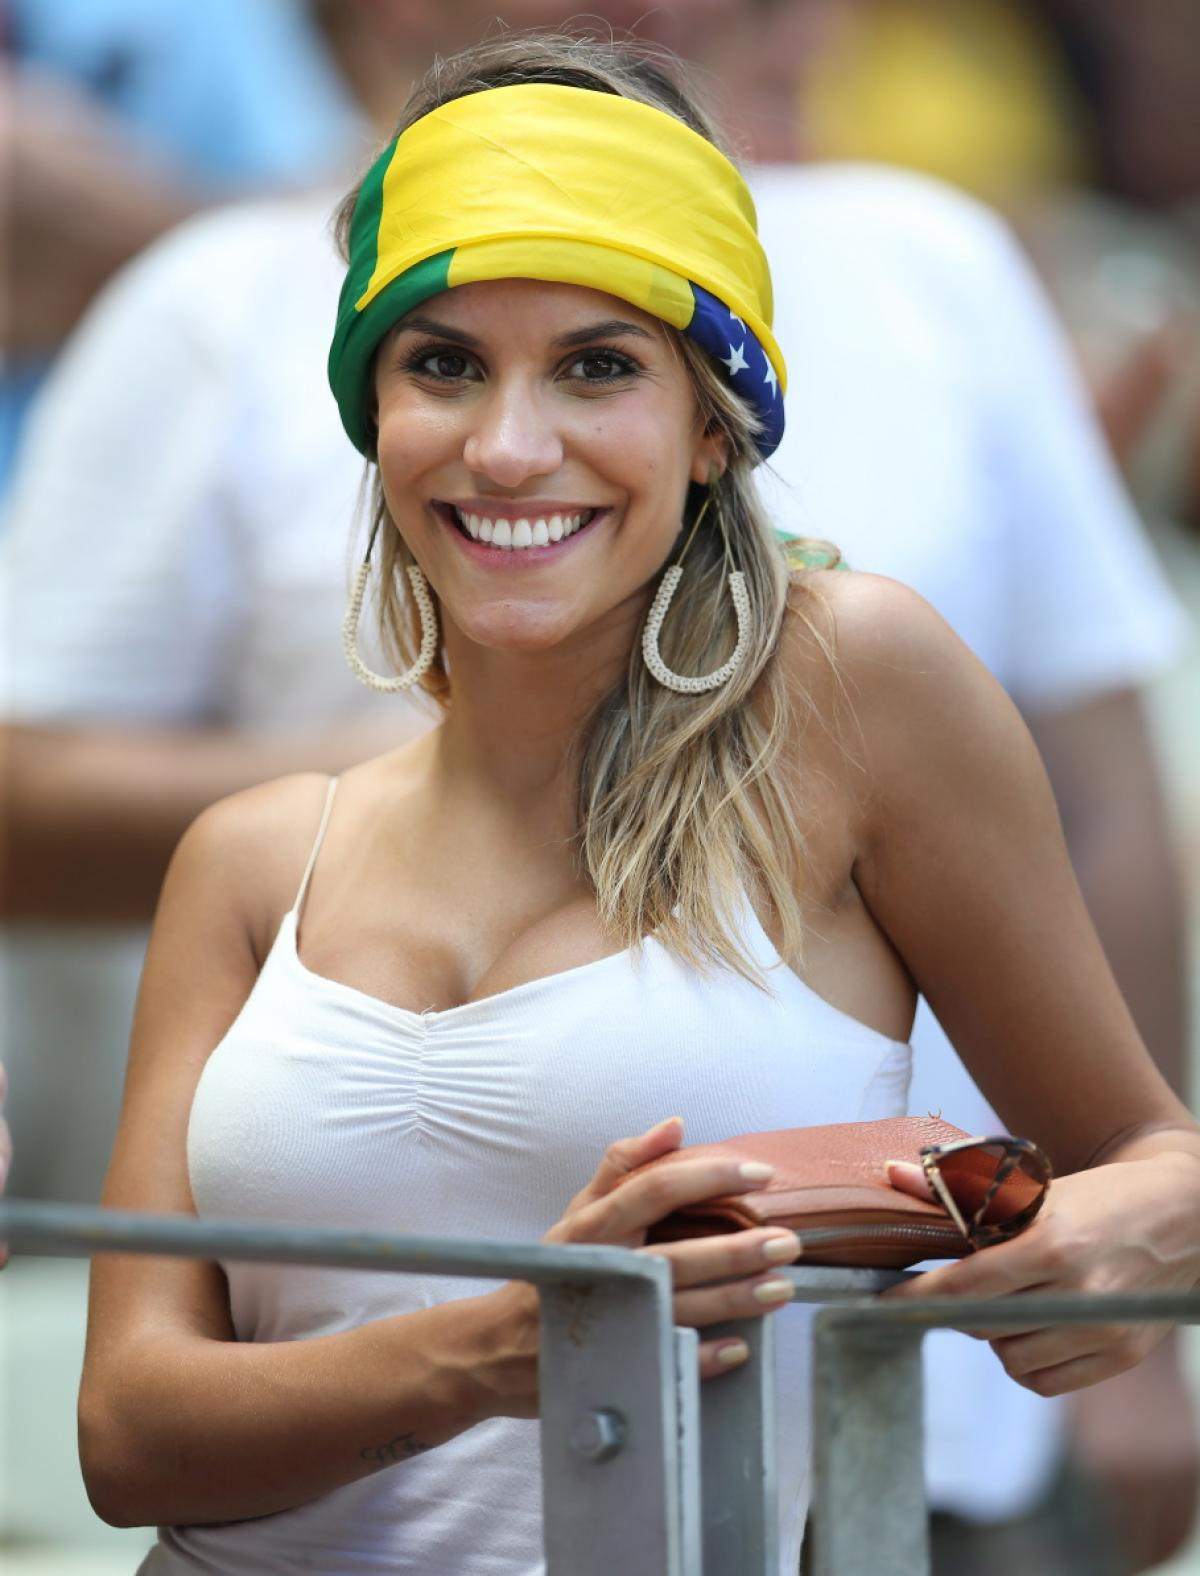 Hot Brazilian Girl pertaining to 26 hottest fans of the world cup - pop culture gallery | ebaum's world